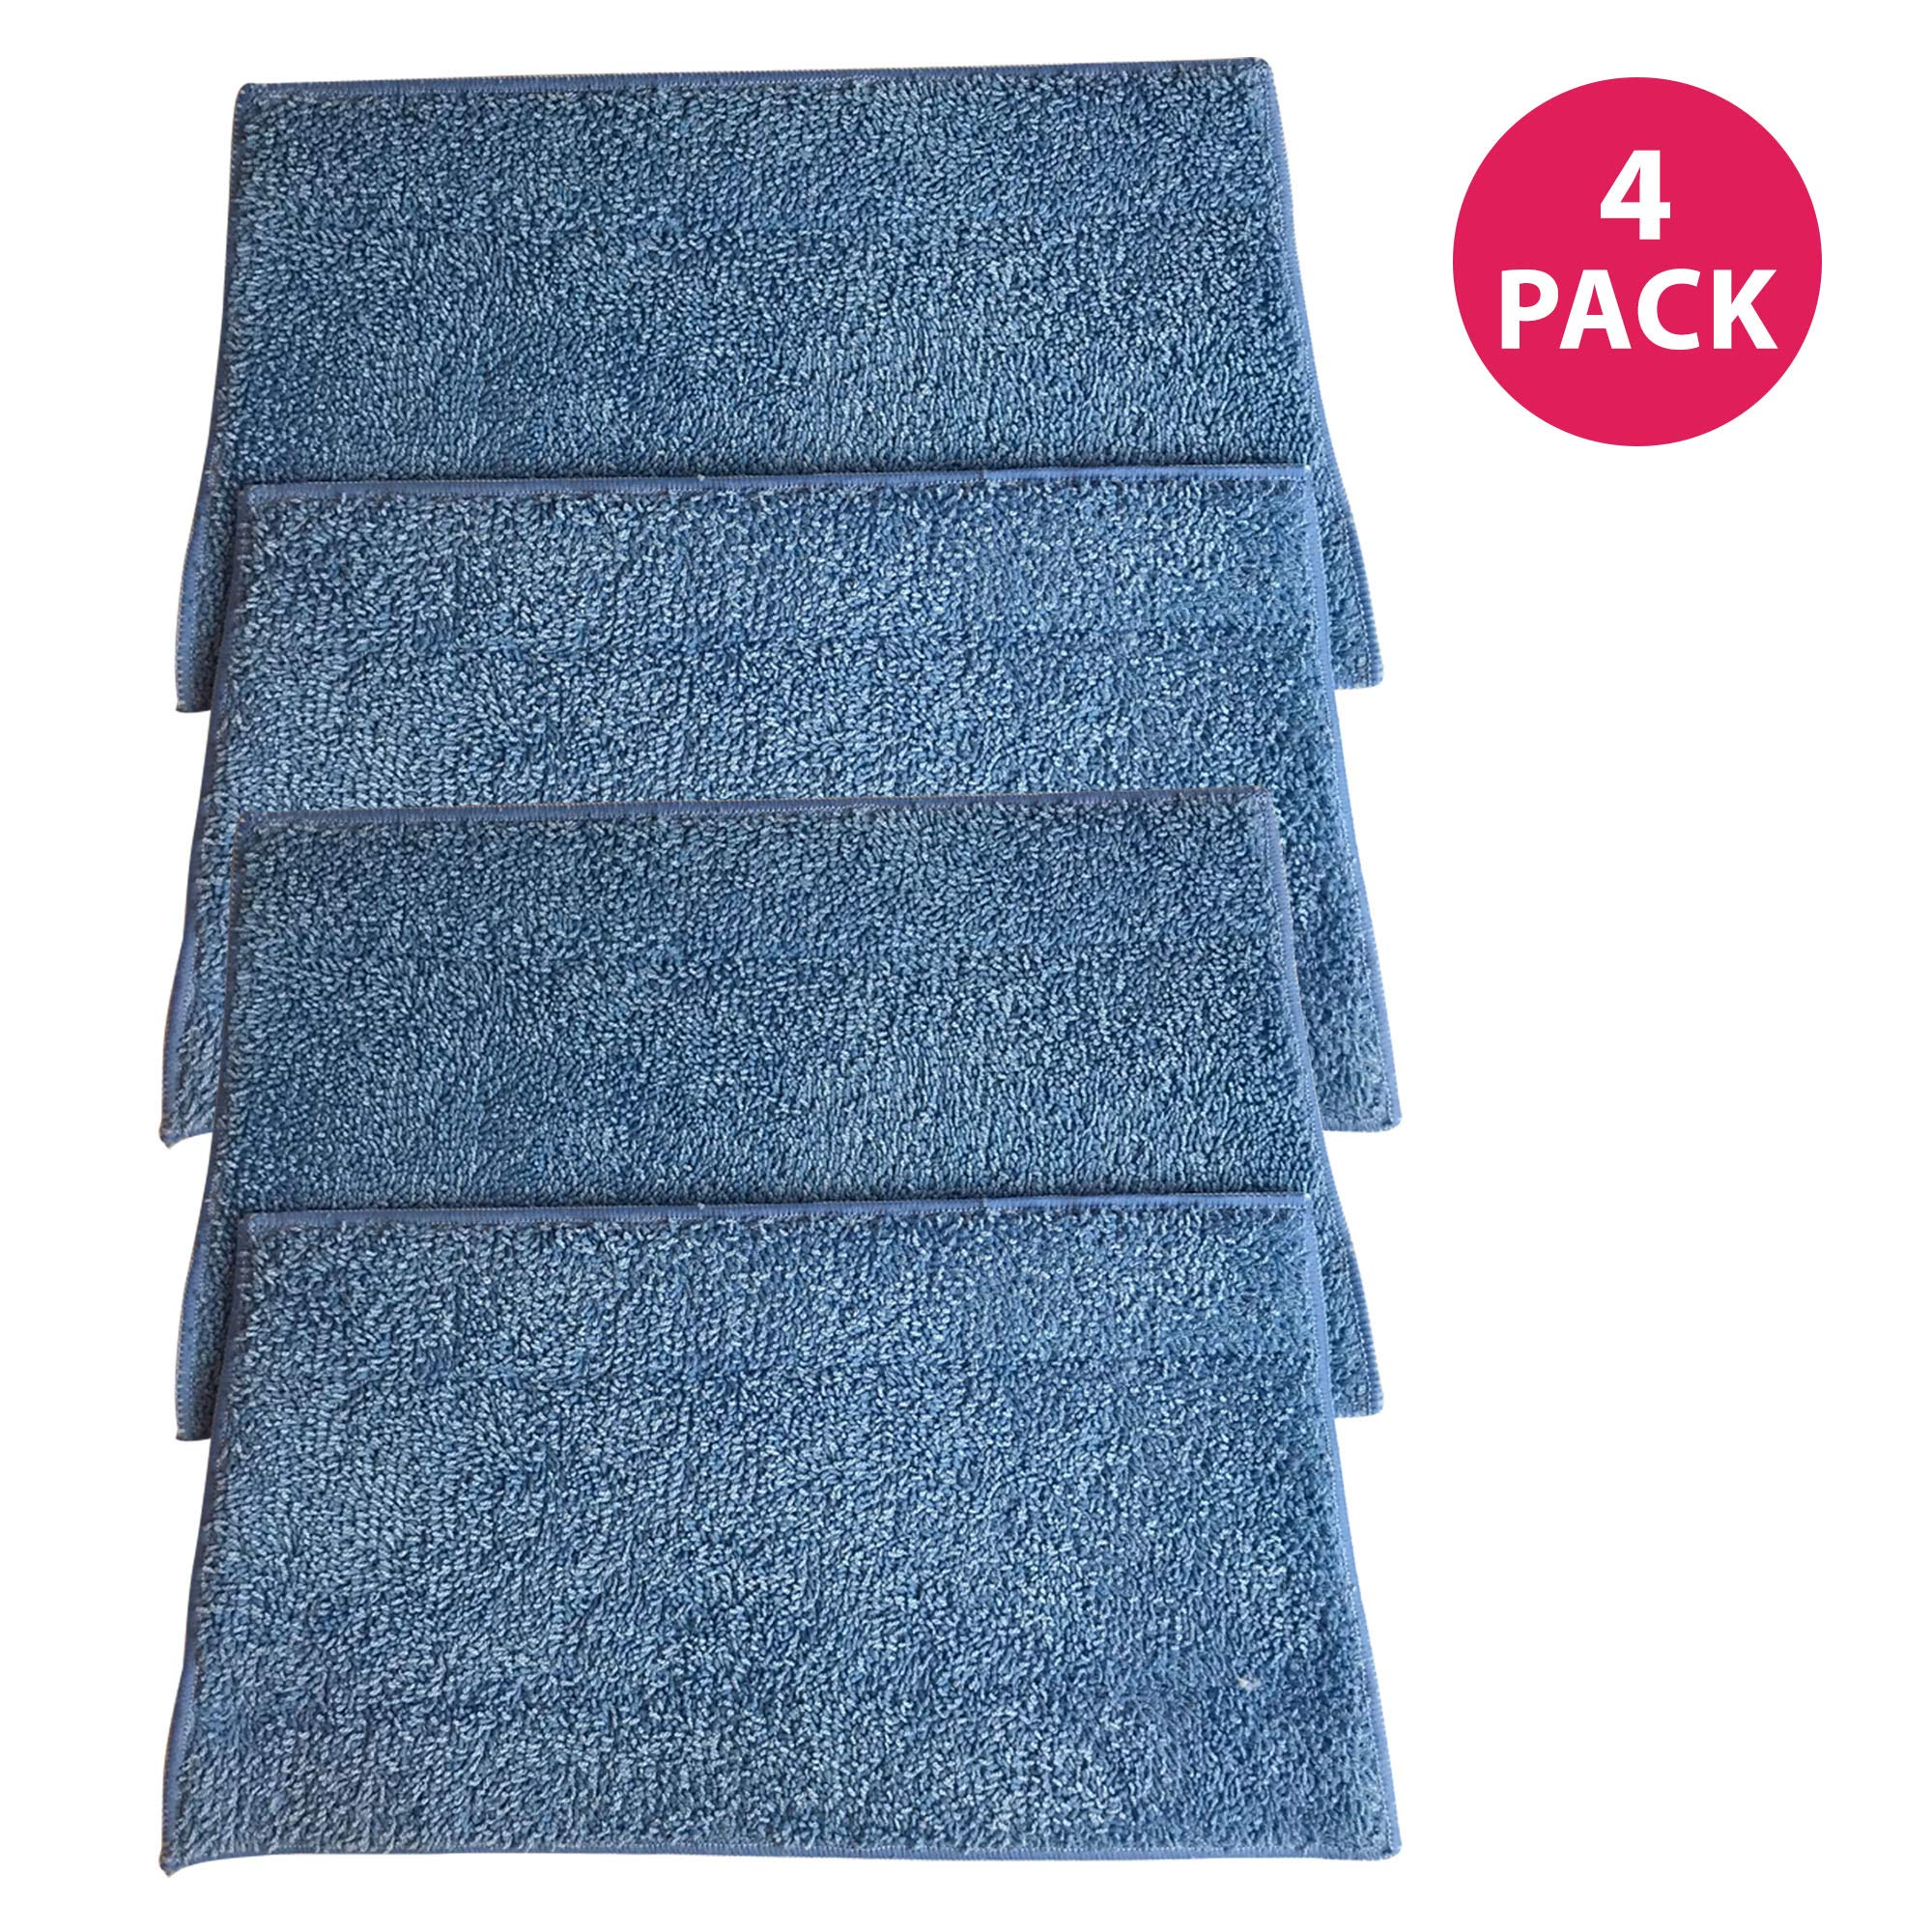 Crucial Vacuum Replacement Mop Pads - Compatible with Euroflex - Fits Euroflex EZ1 Monster Microfiber Steam Pads - Washable, Reusable Part, Models for Home, Office Universal Use - Easy Clean (4 Pack) by Crucial Vacuum